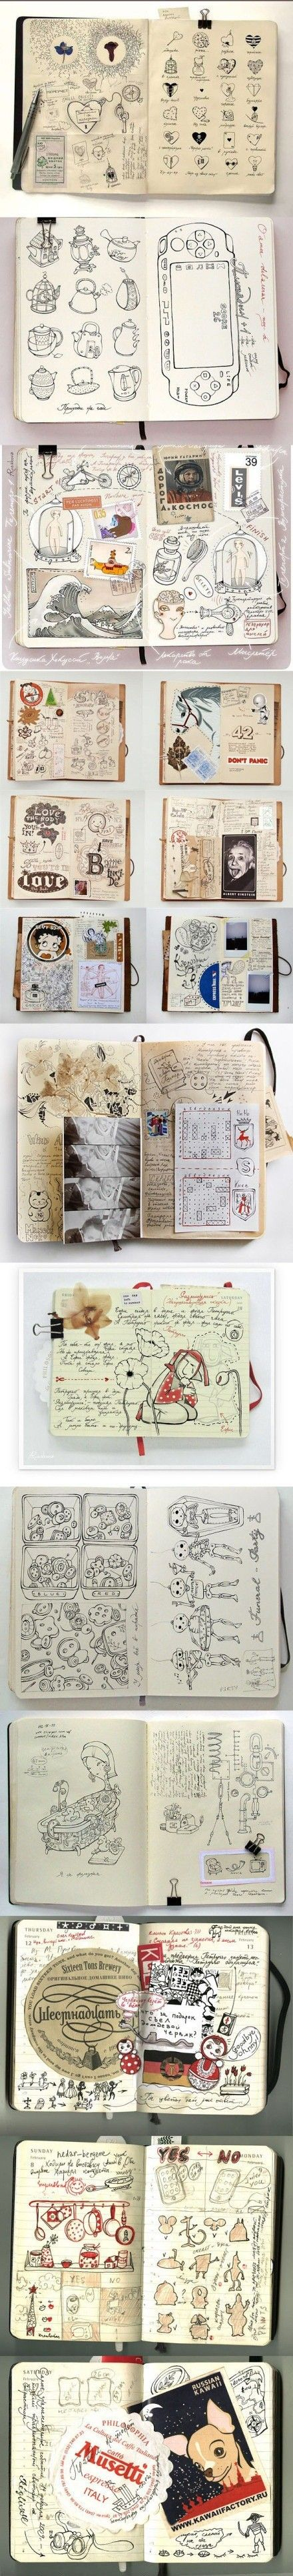 Art journal, sketchbook, ideas.